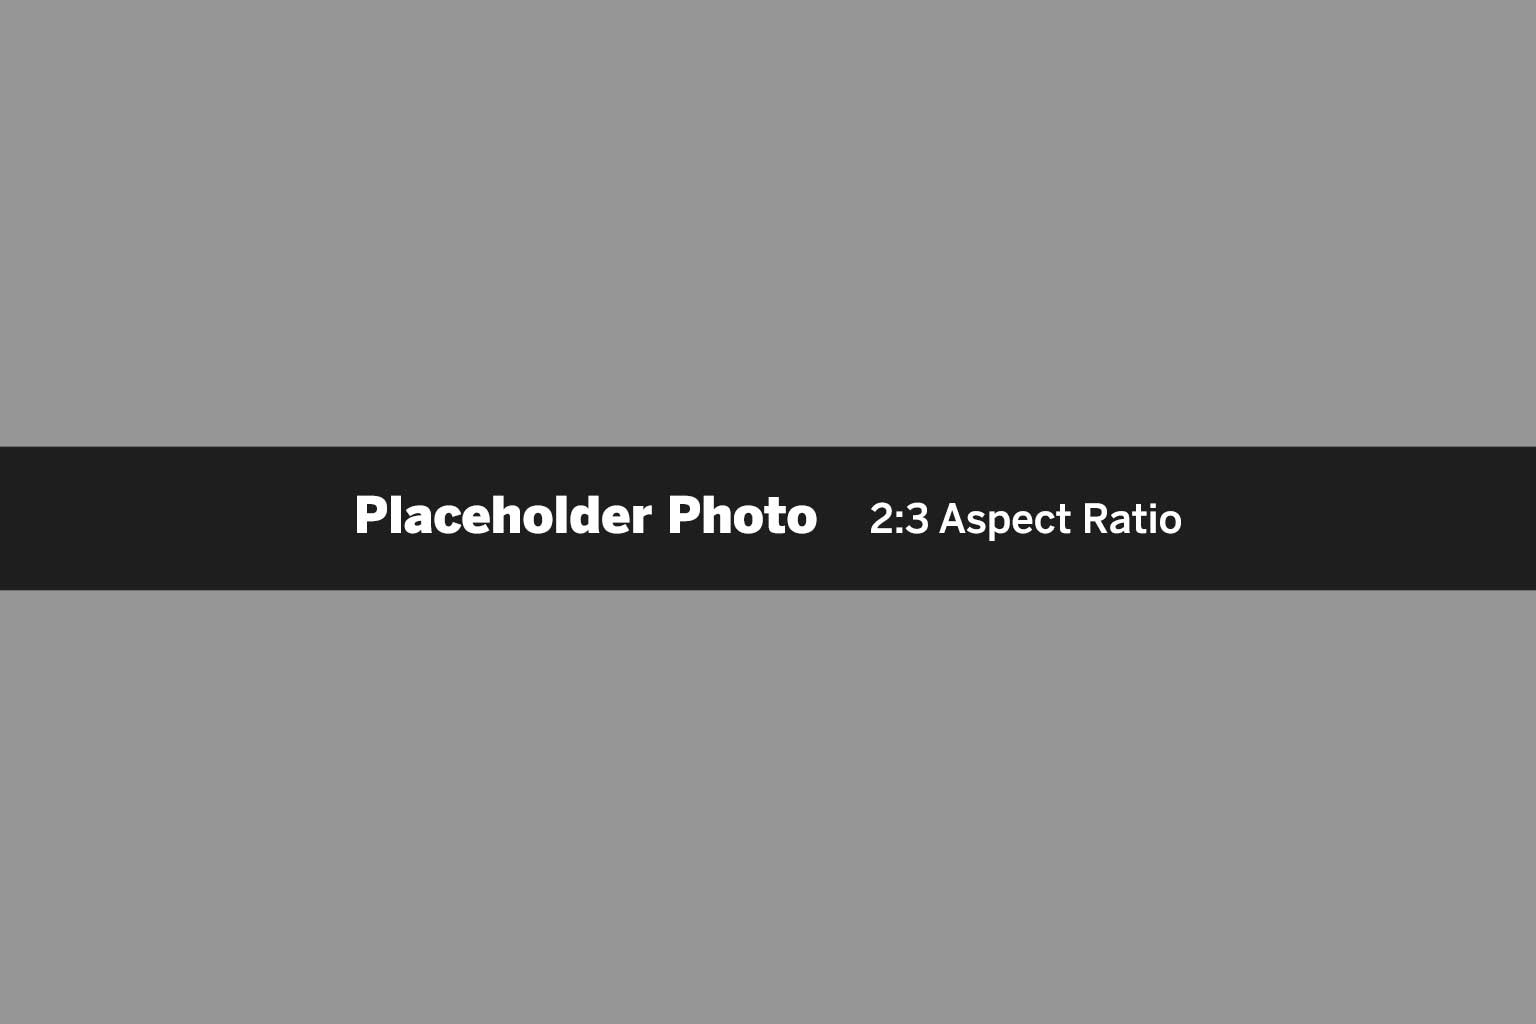 2:3 aspect ratio placeholder photo